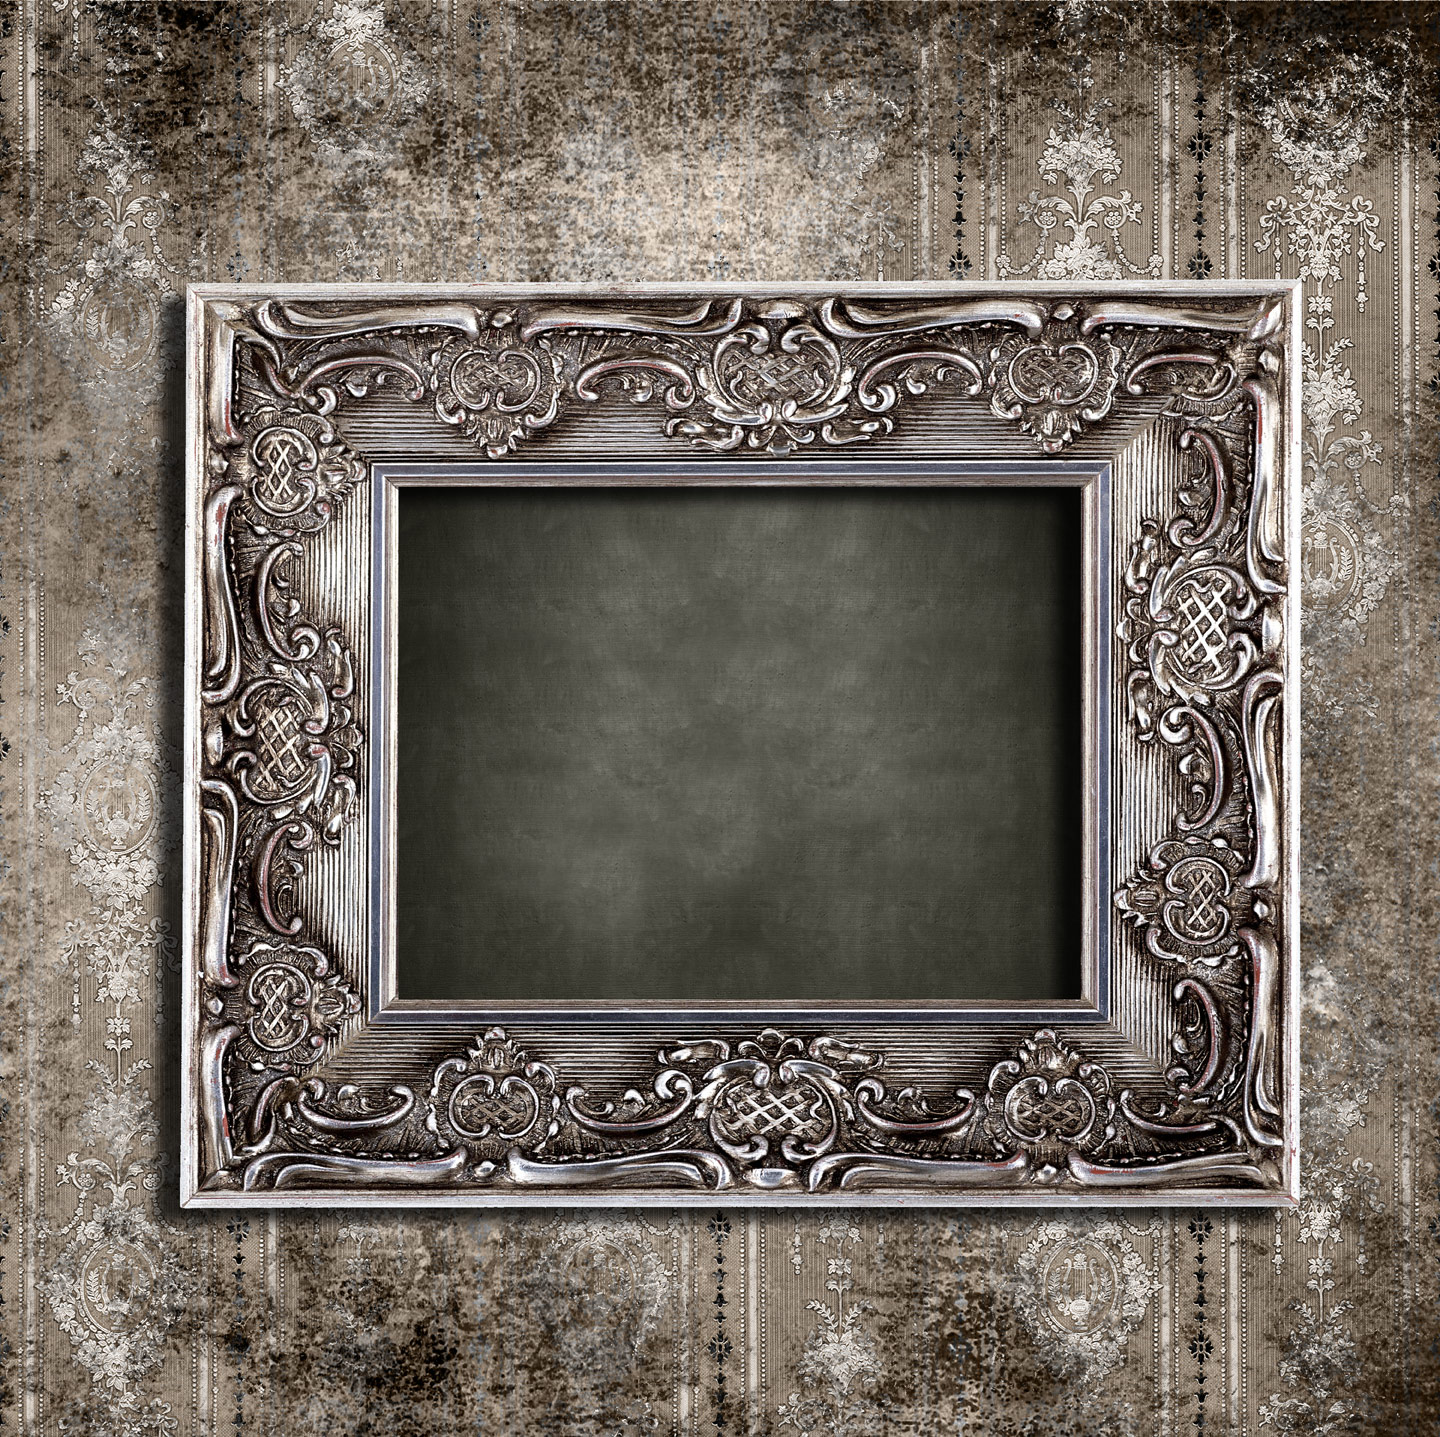 European-style frame with beautiful wallpaper 27506